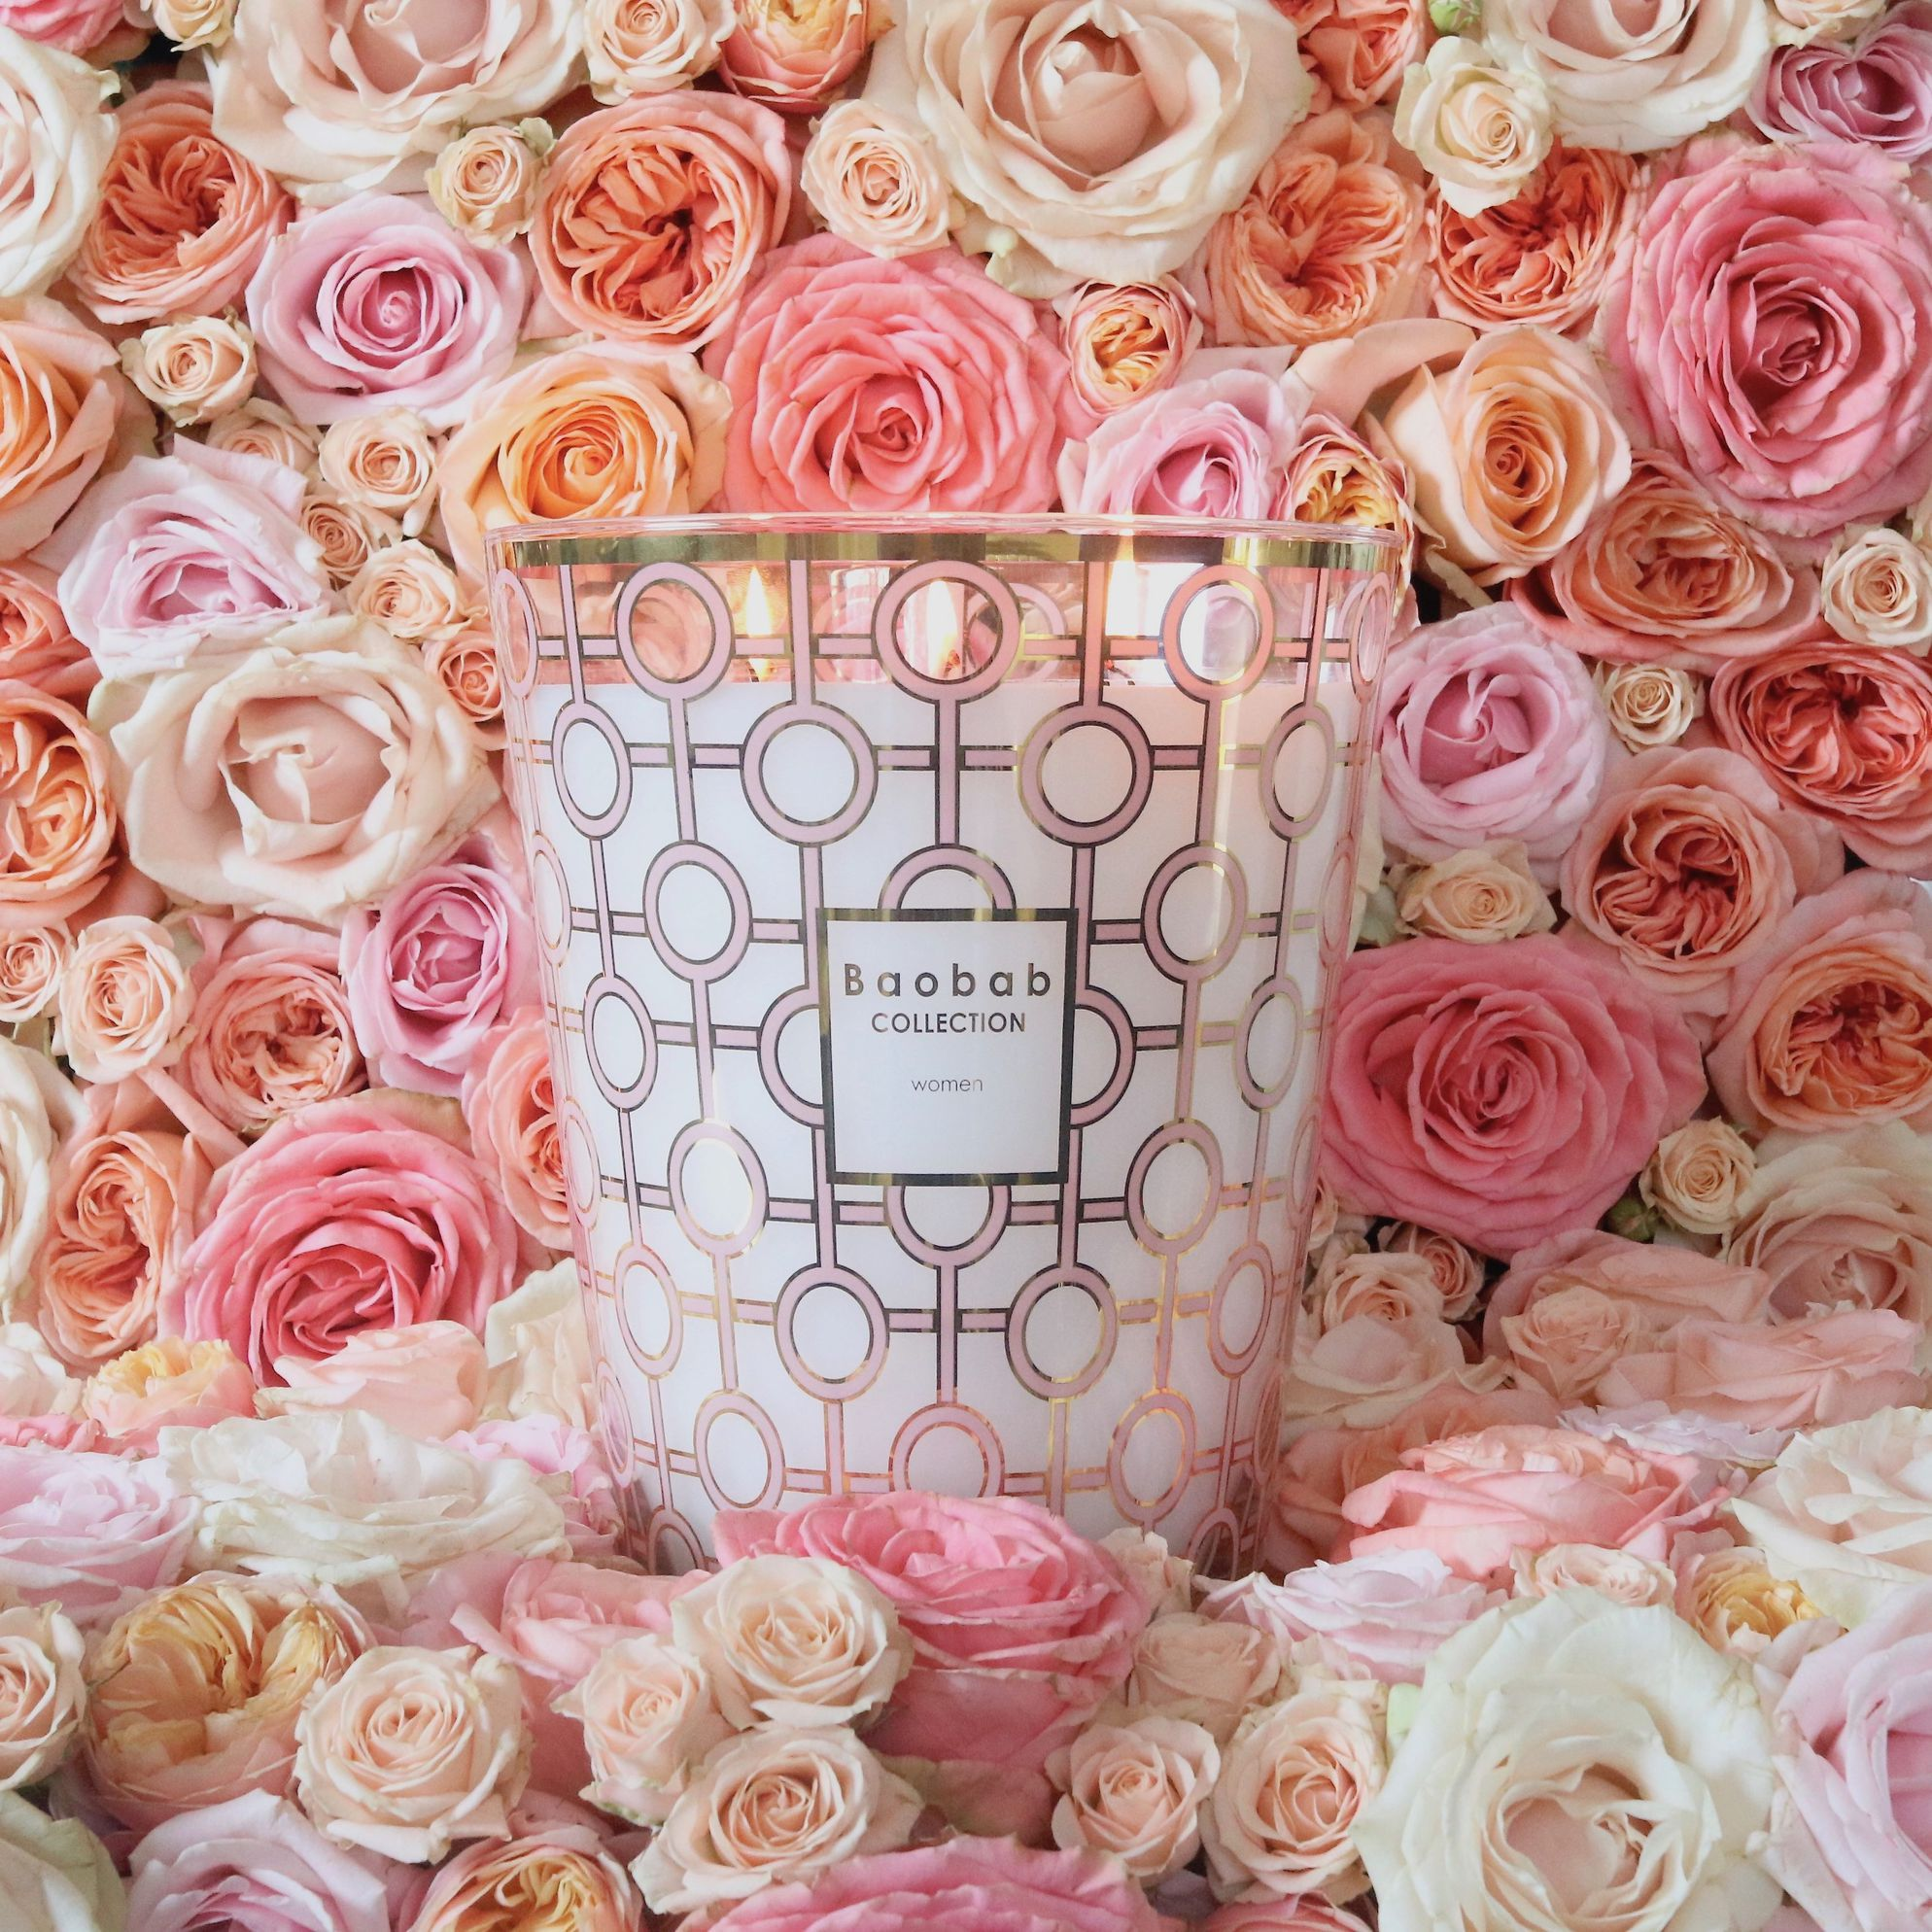 women-roses-baobab-collection-big-against-breast-cancer-3